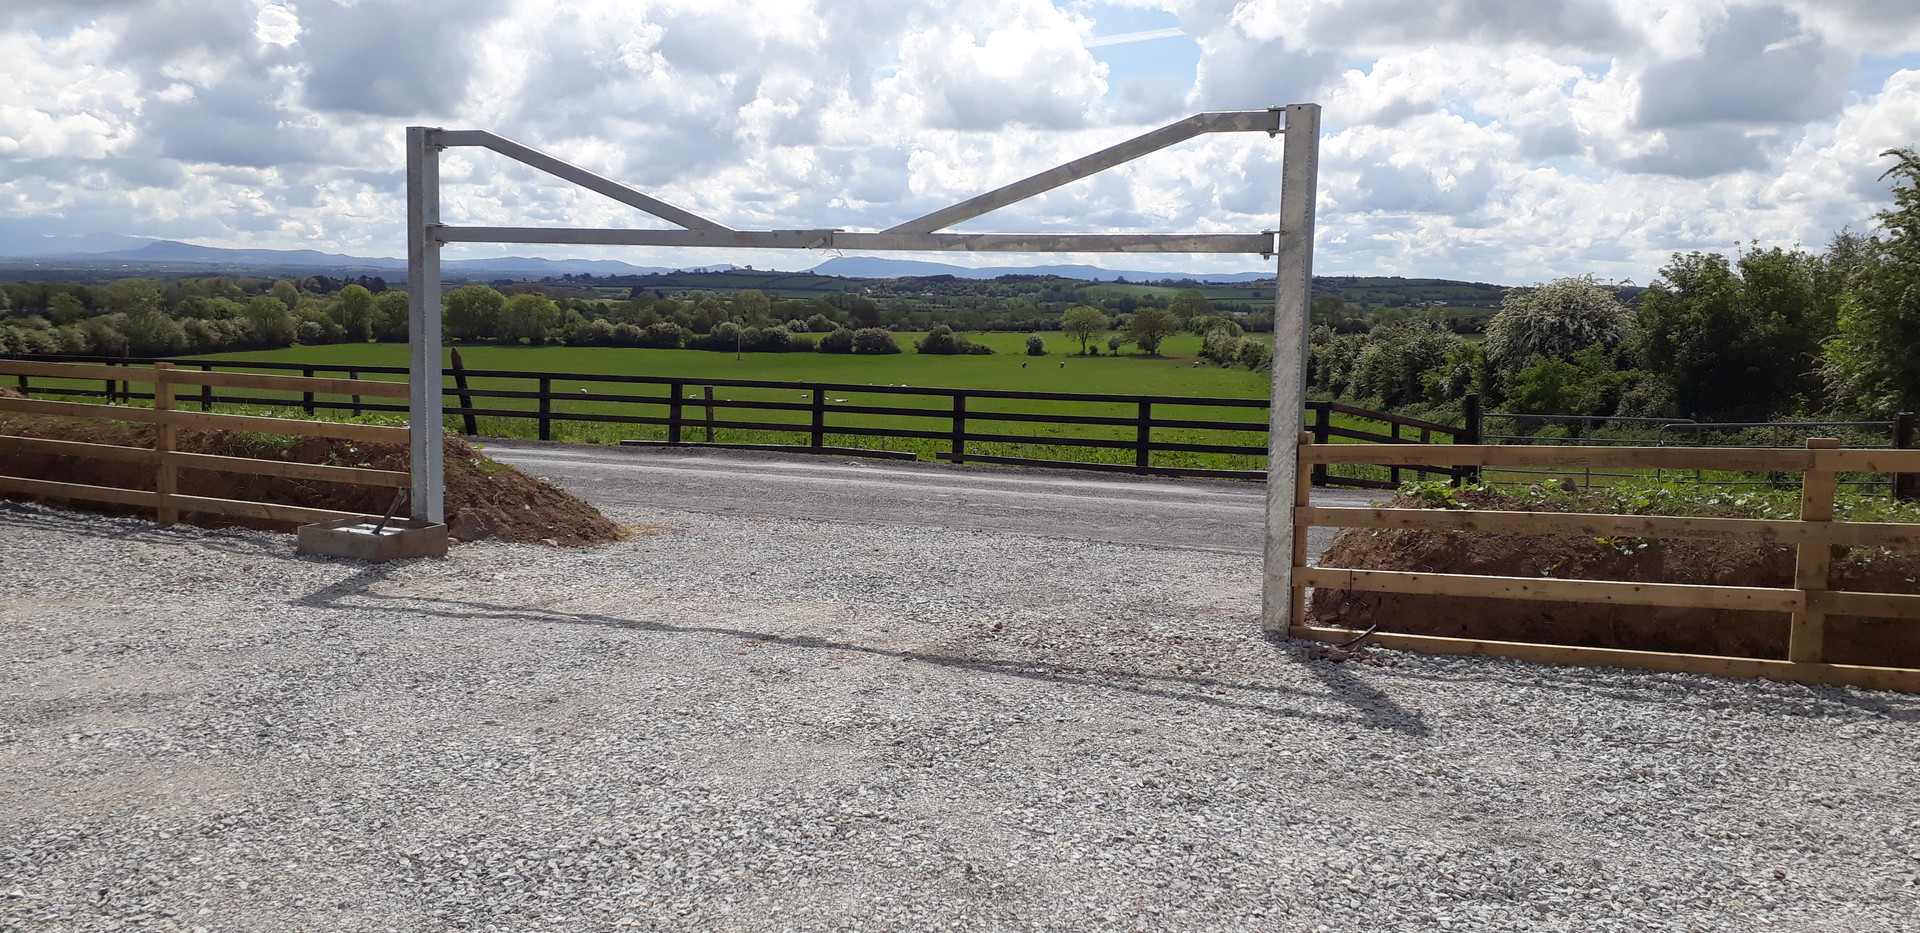 New Barrier in Car Park